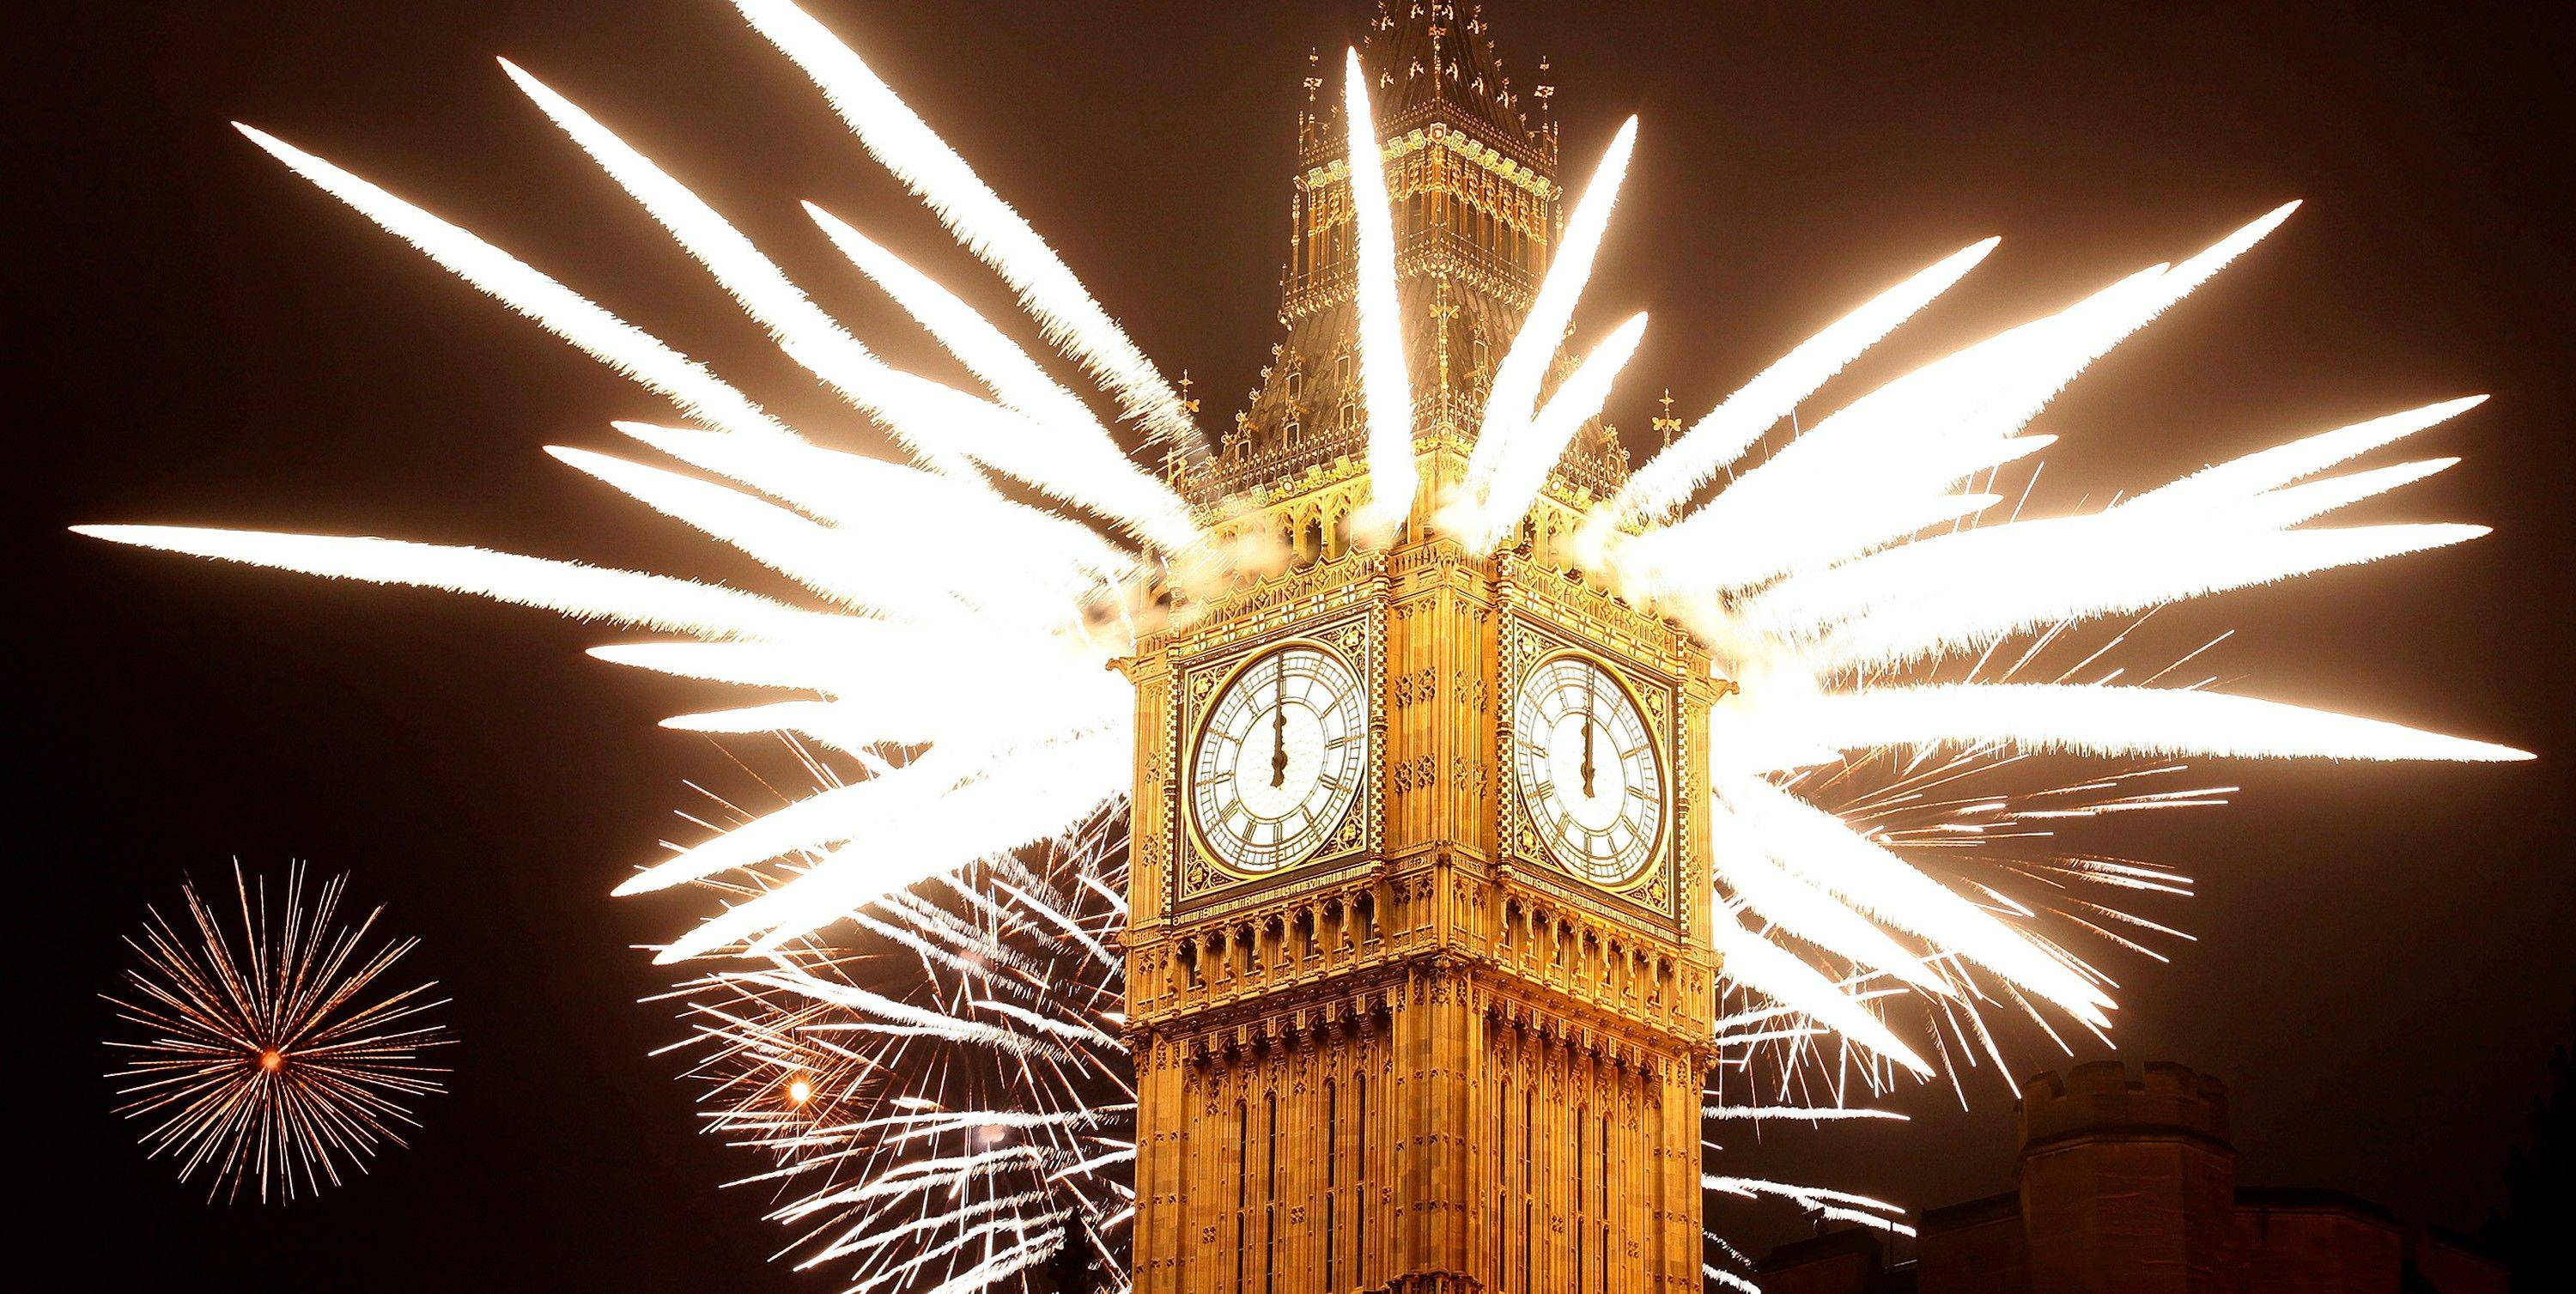 Fireworks explode over the Houses of Parliament, including St Stephen's Tower which holds the bell known as Big Ben as London celebrates the arrival of New Year's Day Sunday, Jan. 1, 2012.